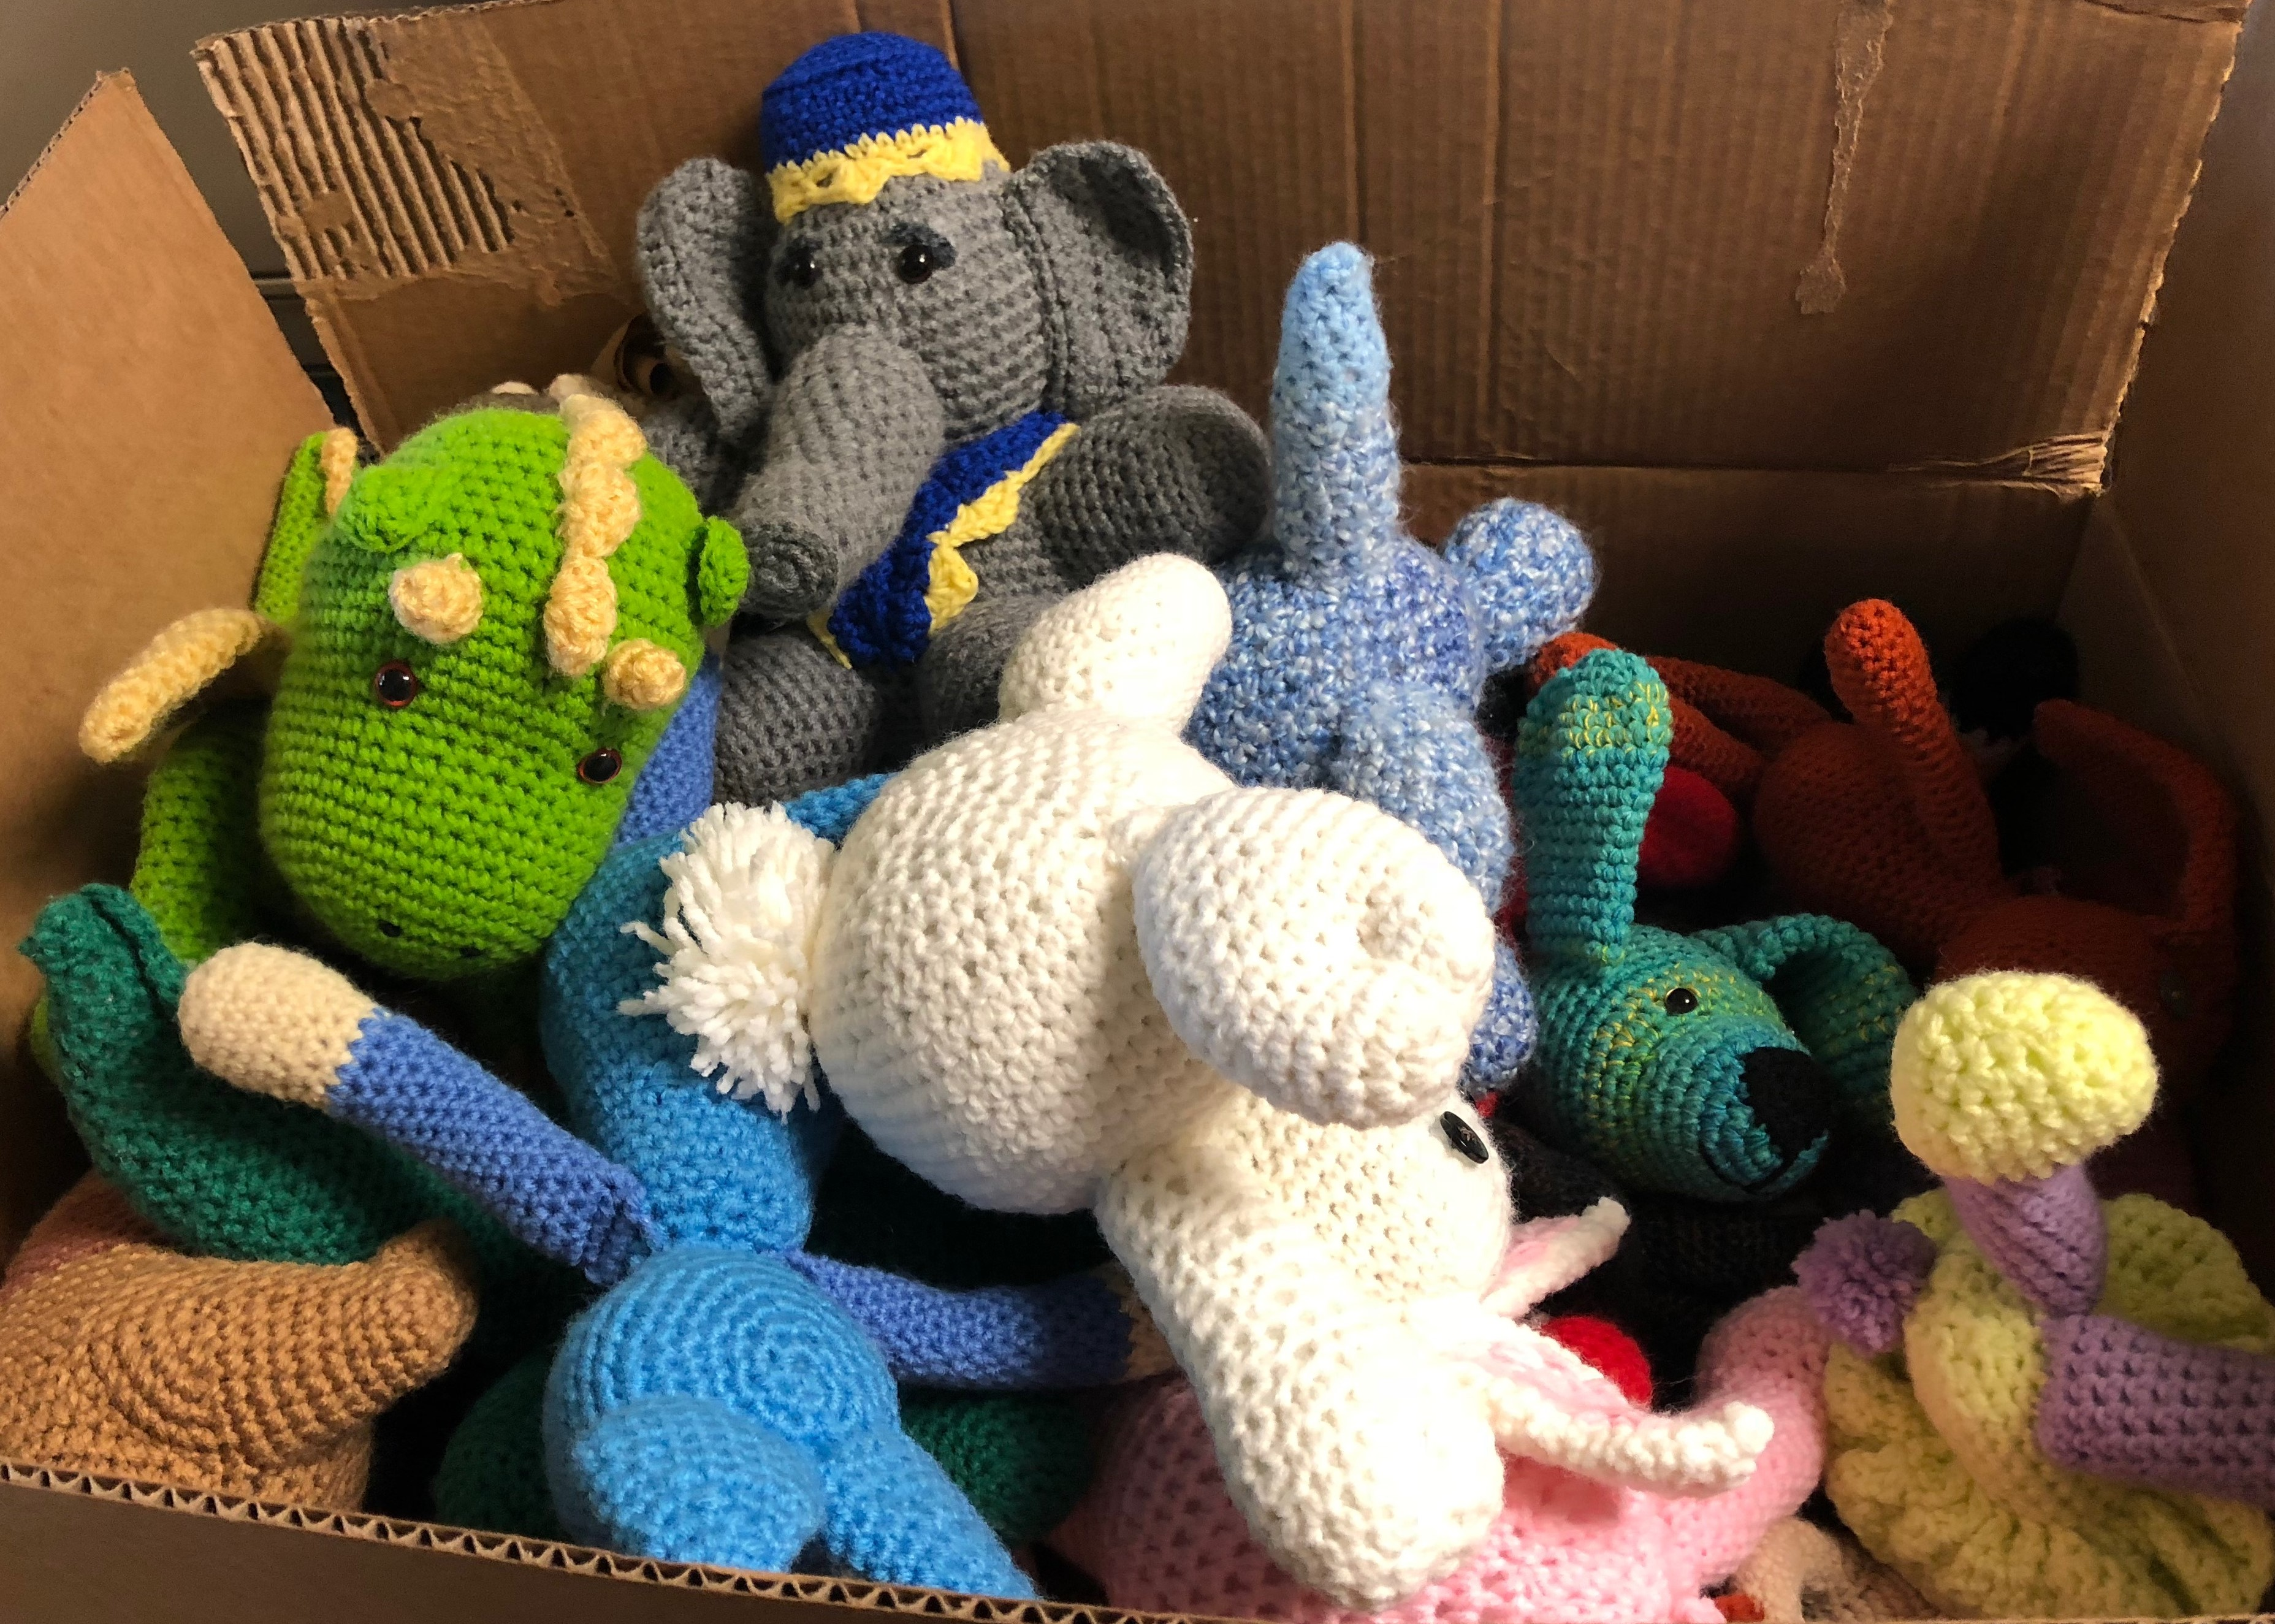 Kids N Loop Organization and Offenders Make Stuff Animals at GCI